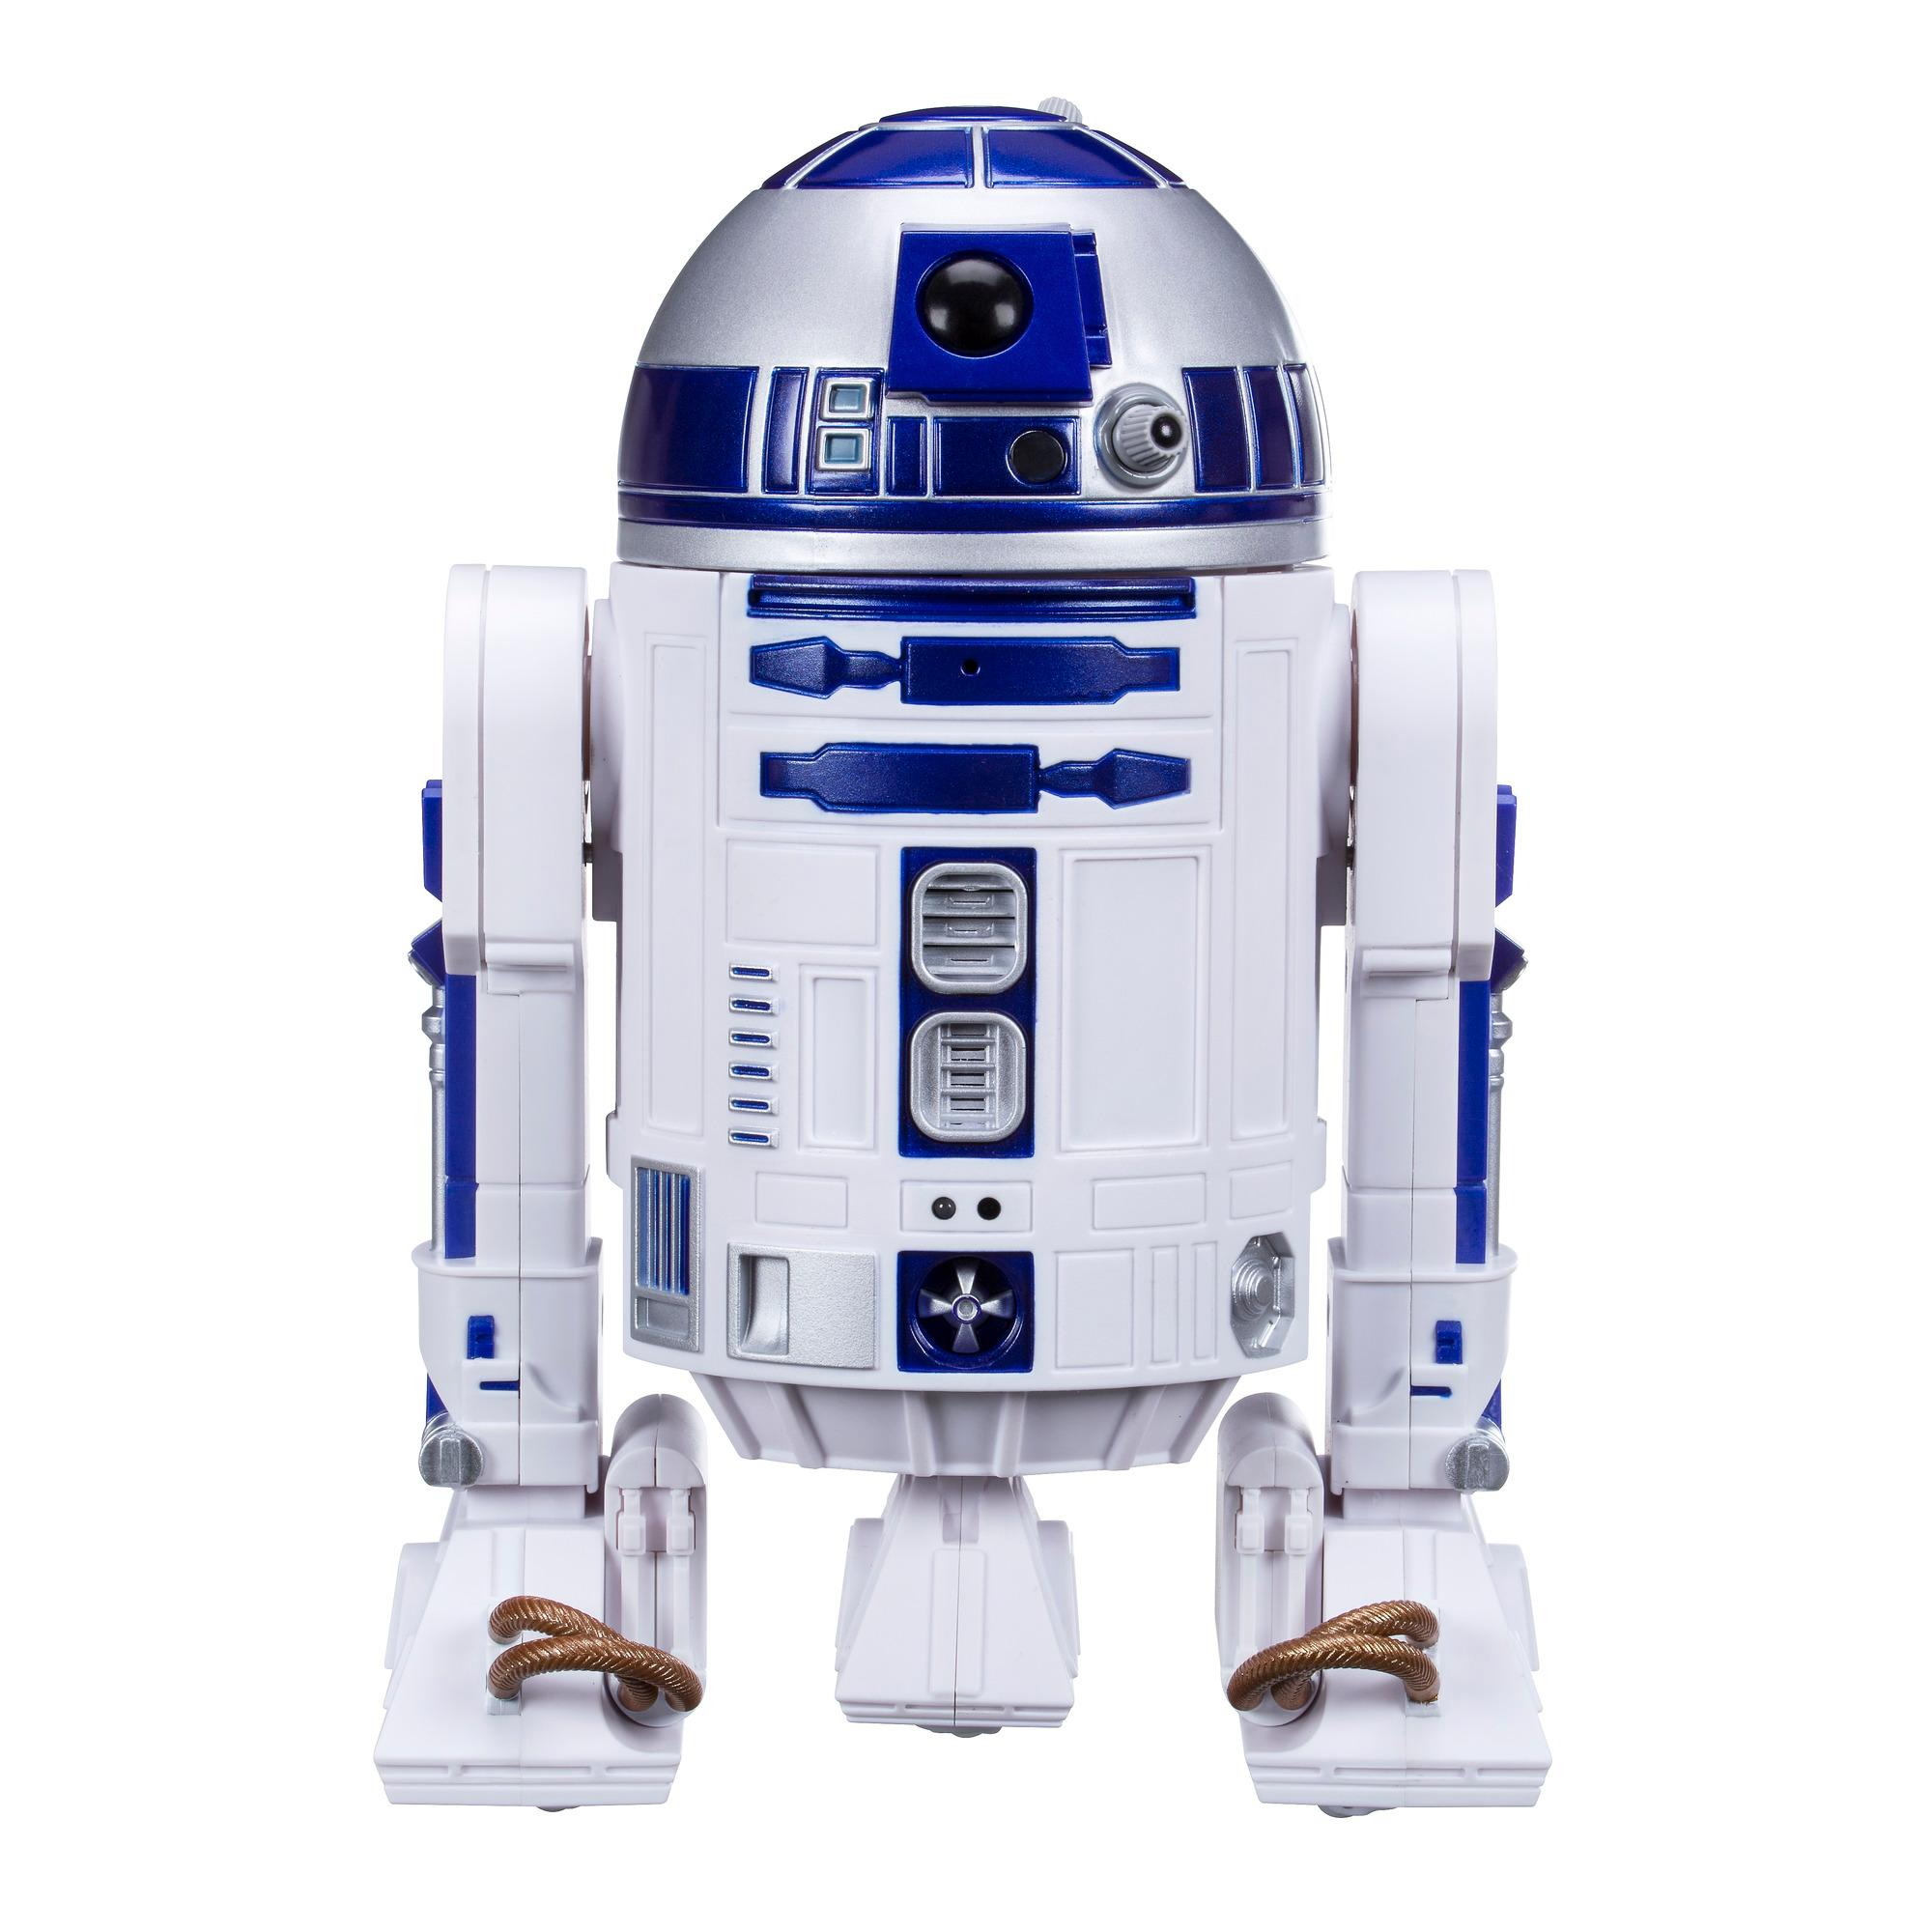 Star Wars: The Last Jedi Smart R2-D2